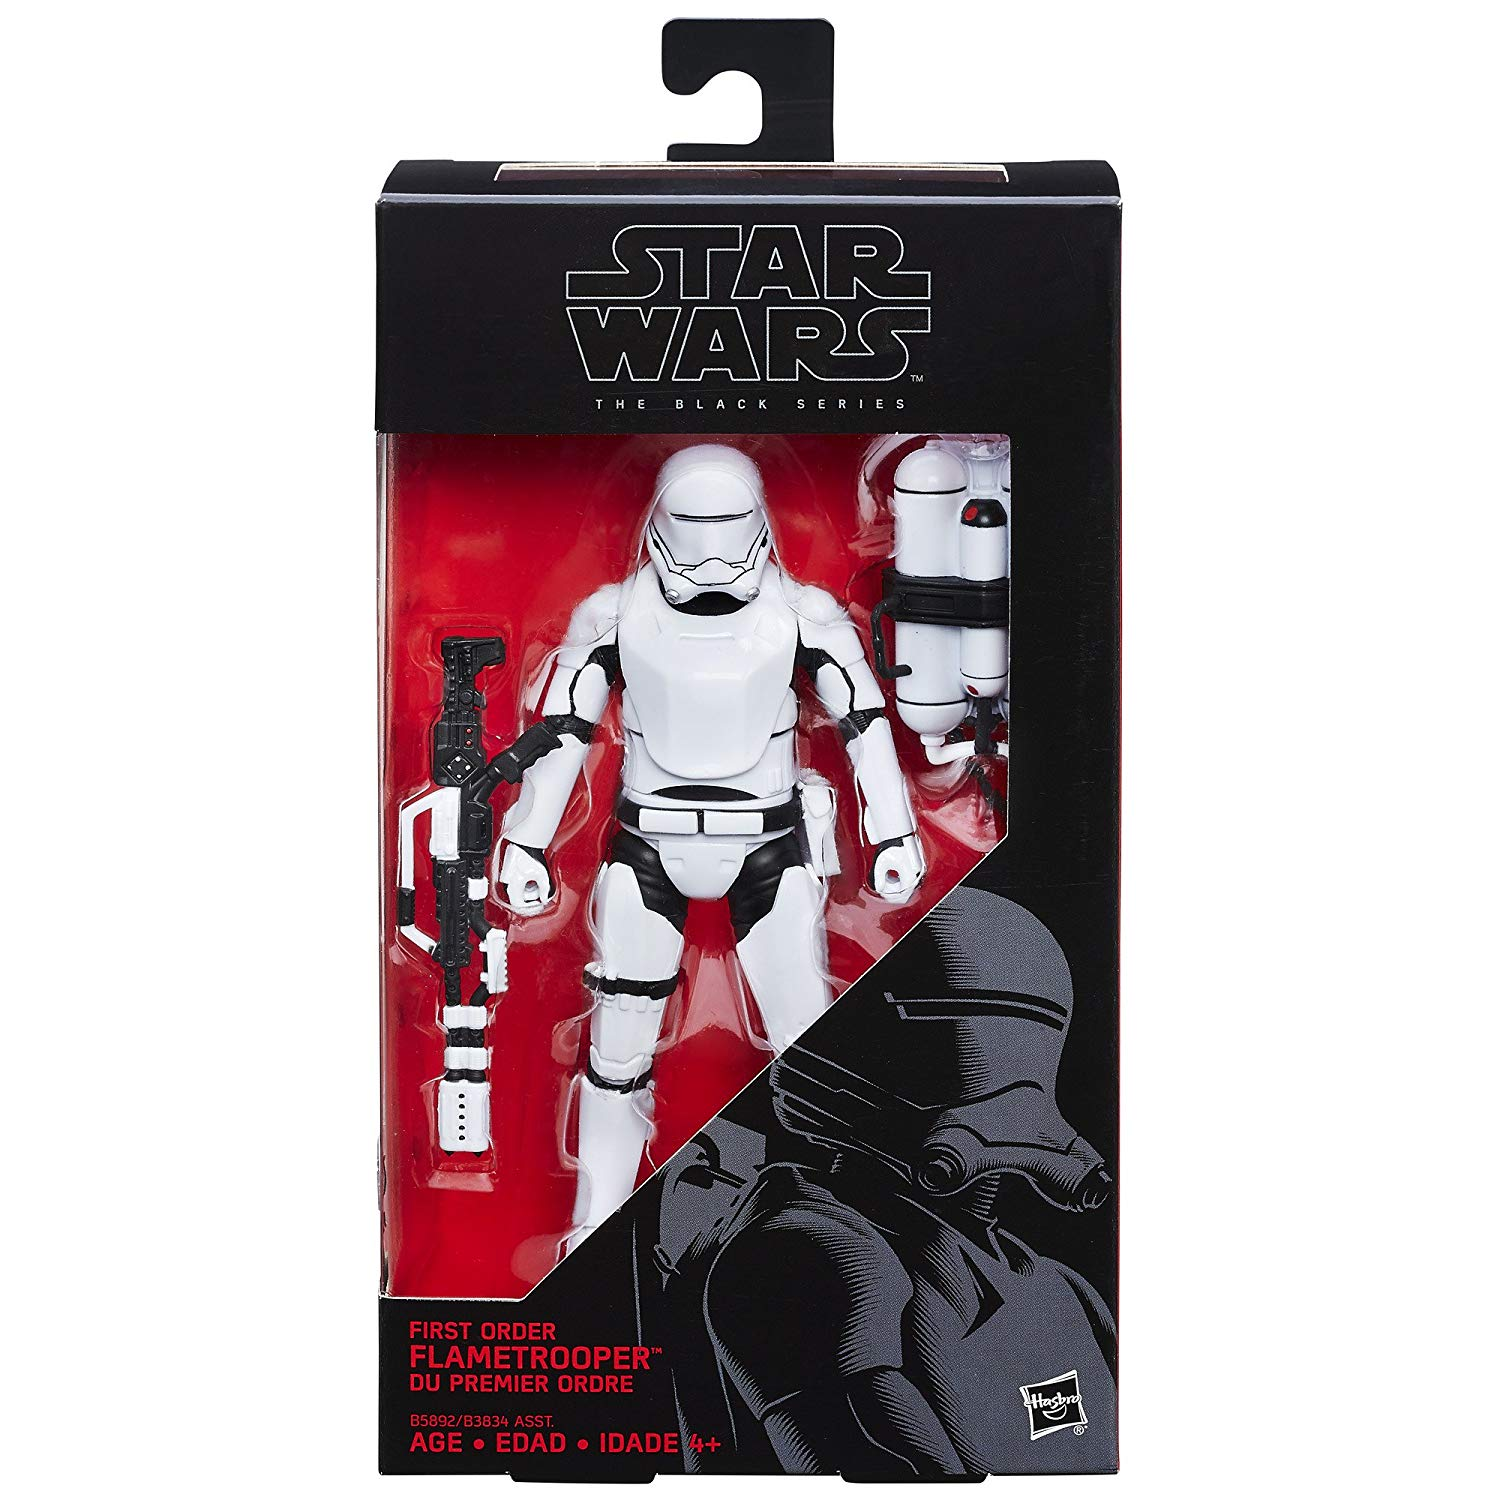 Star Wars The Black Series - Flametrroper da Primeira Ordem- Hasbro- B3834